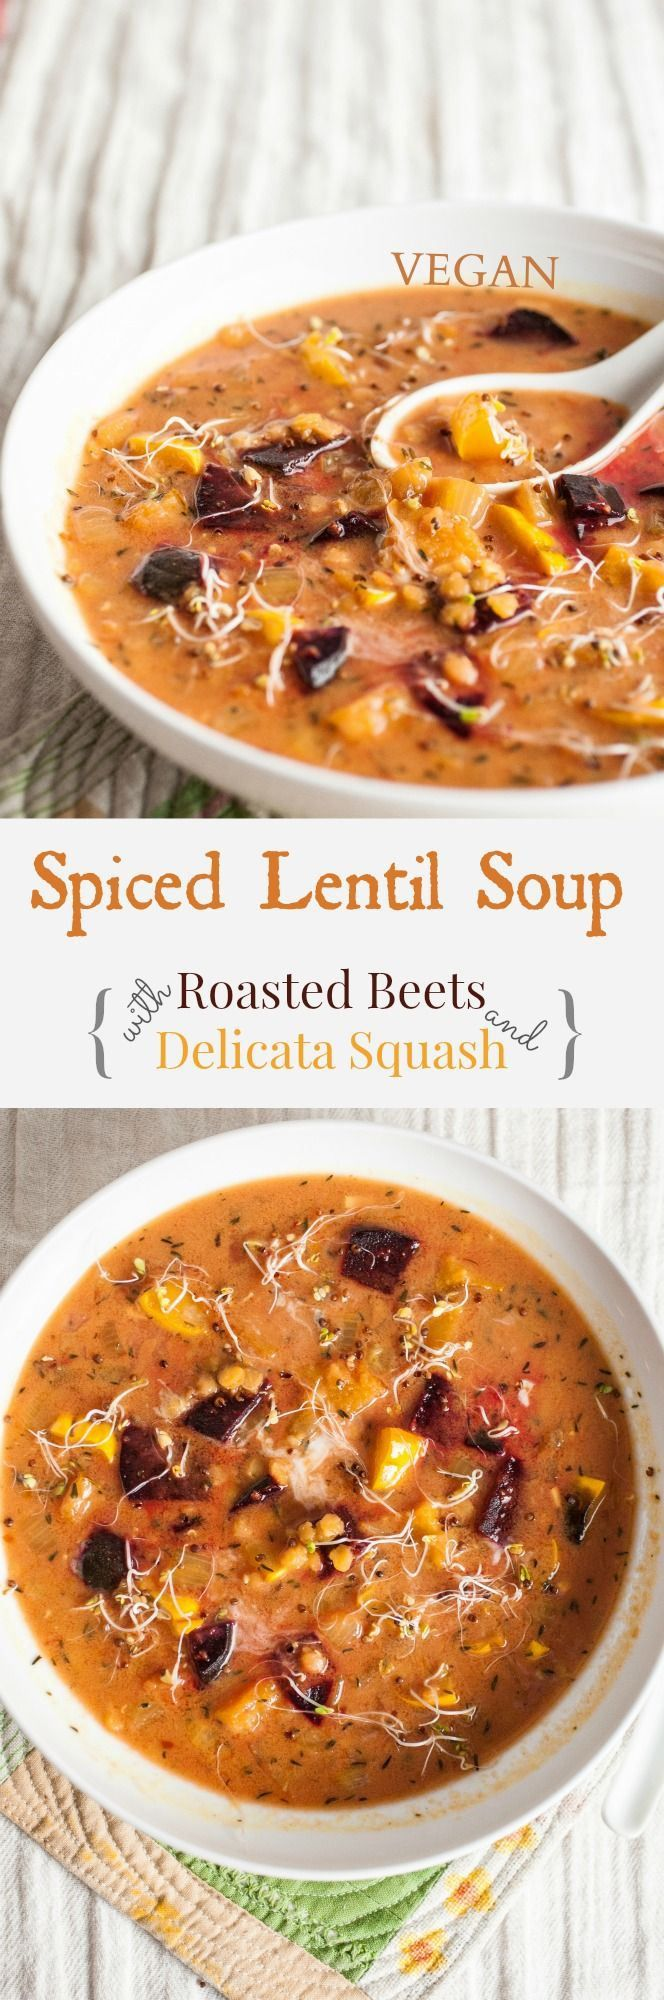 145 best images about Squash Recipes on Pinterest ...